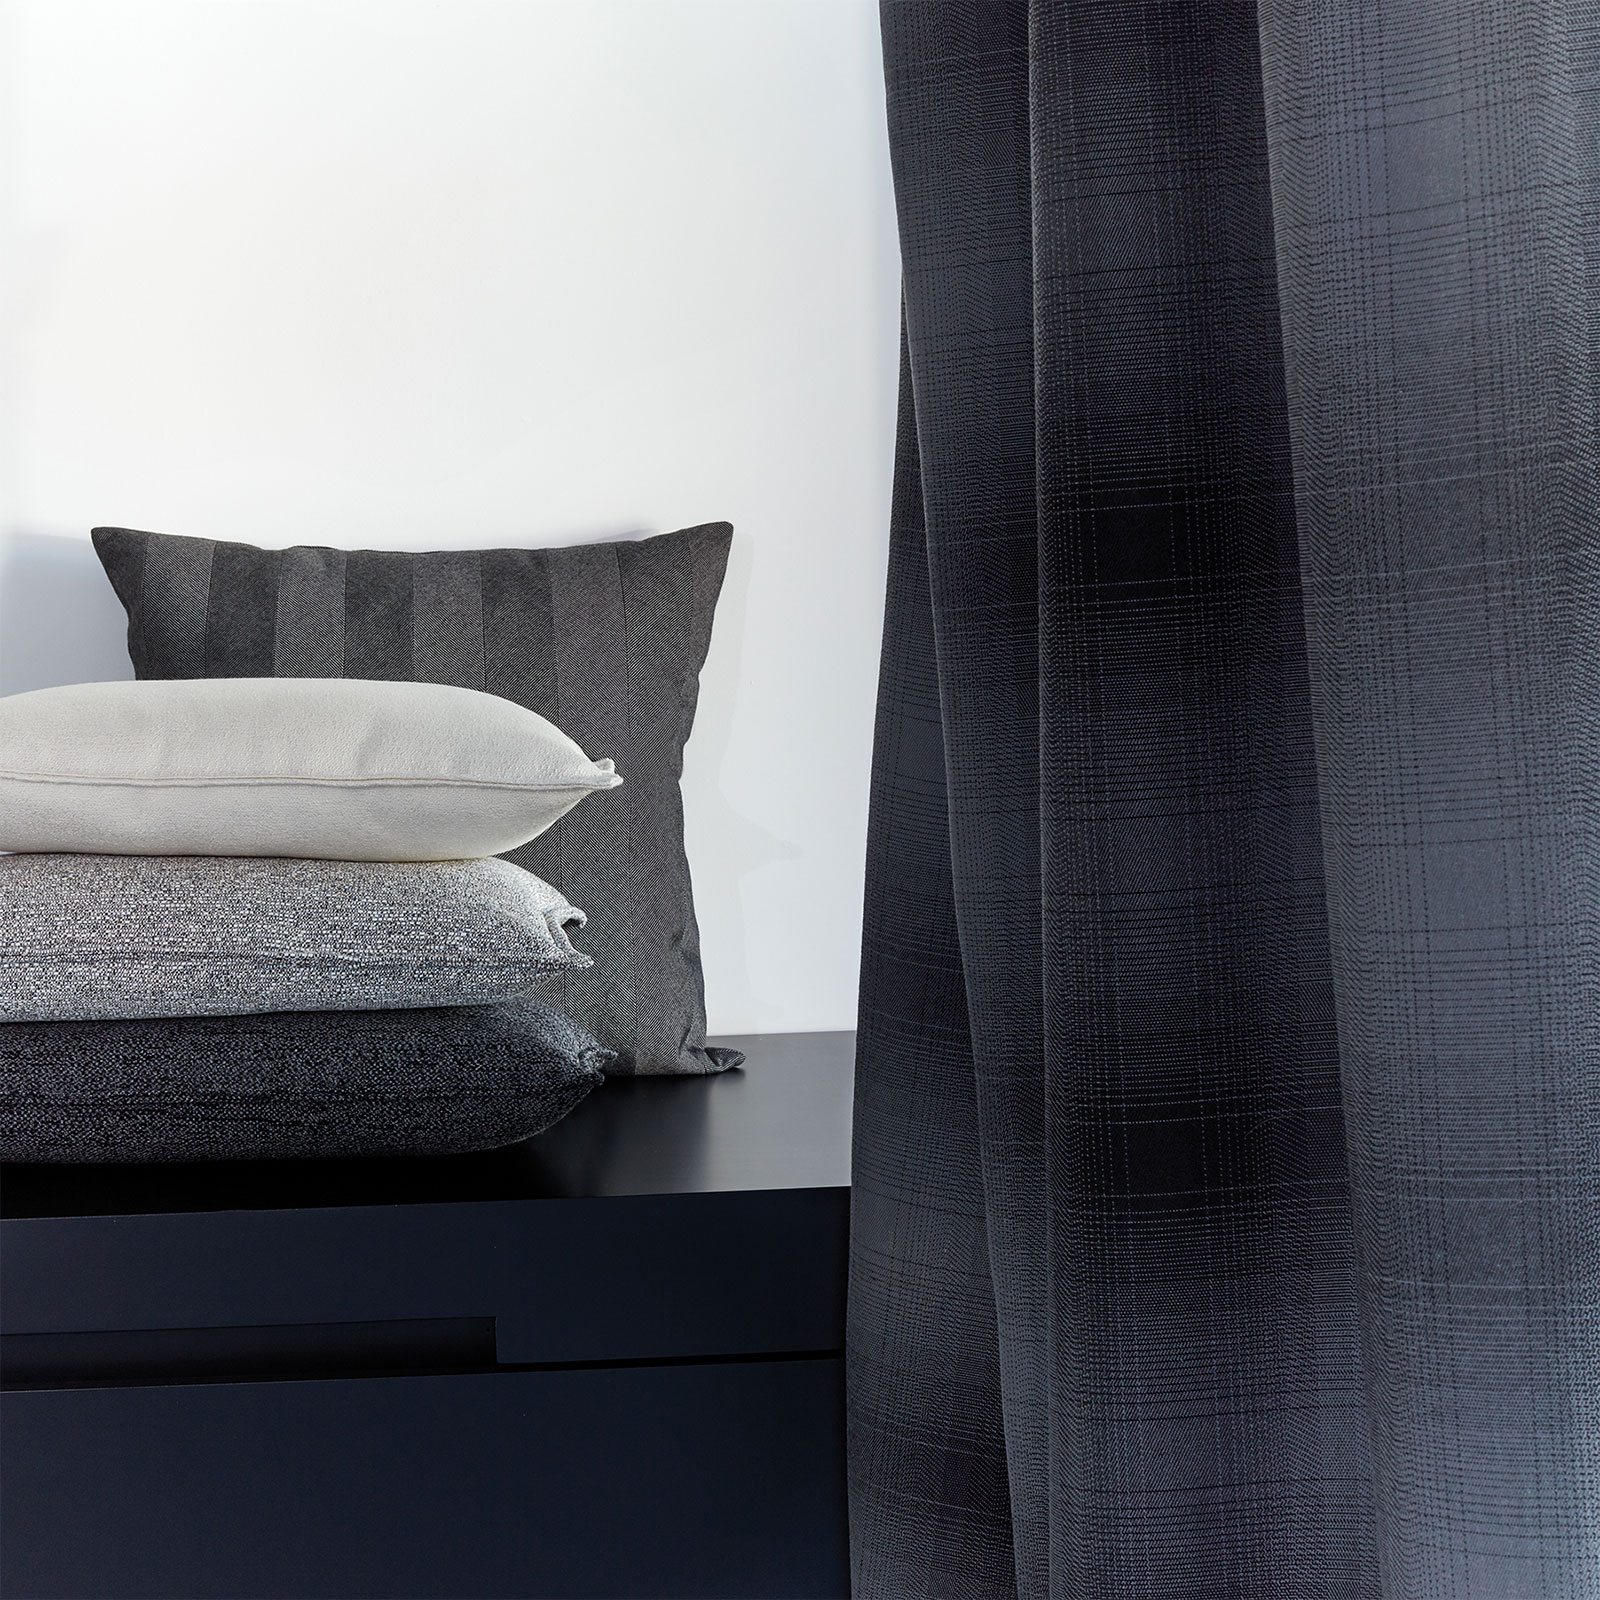 Neutral pillows of white, grey and black Sunbrella upholstery fabrics are stacked next to a grey drapery panel.